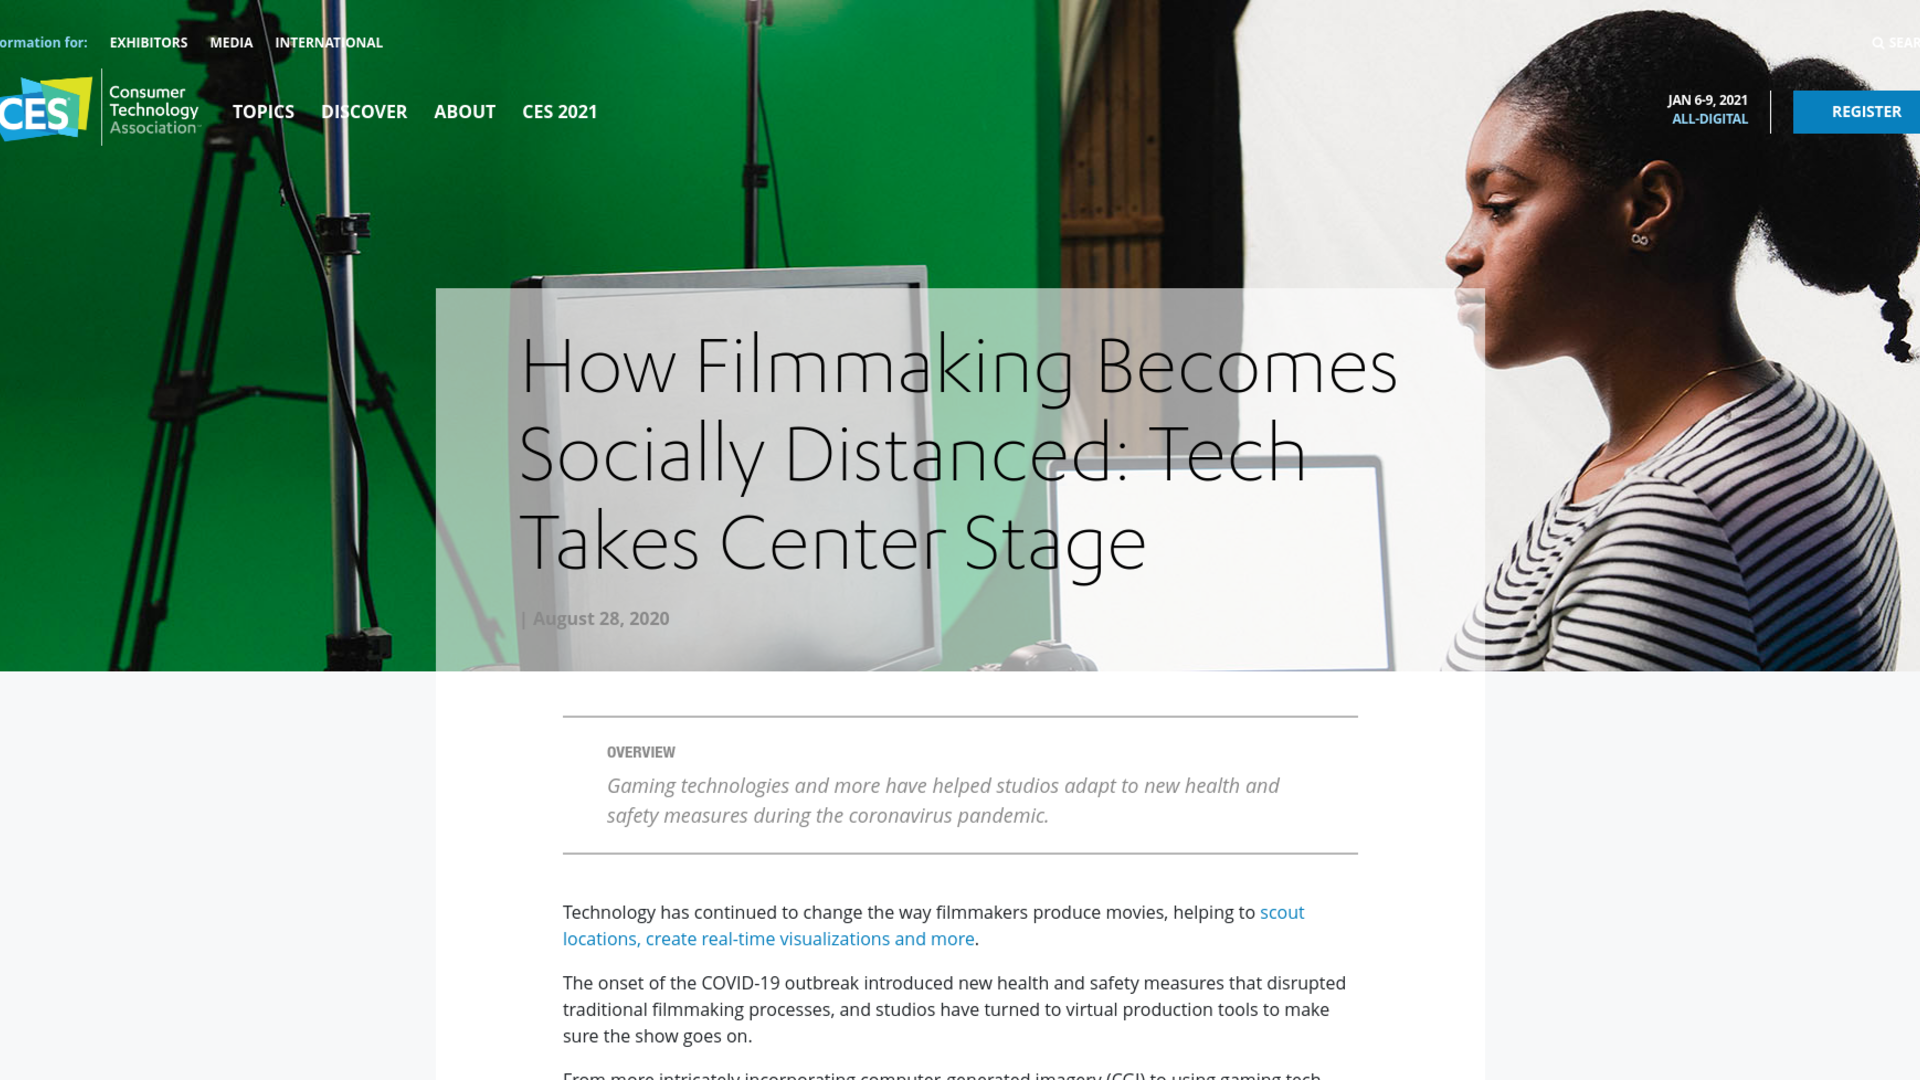 Fairness Rocks News How Filmmaking Becomes Socially Distanced: Tech Takes Center Stage